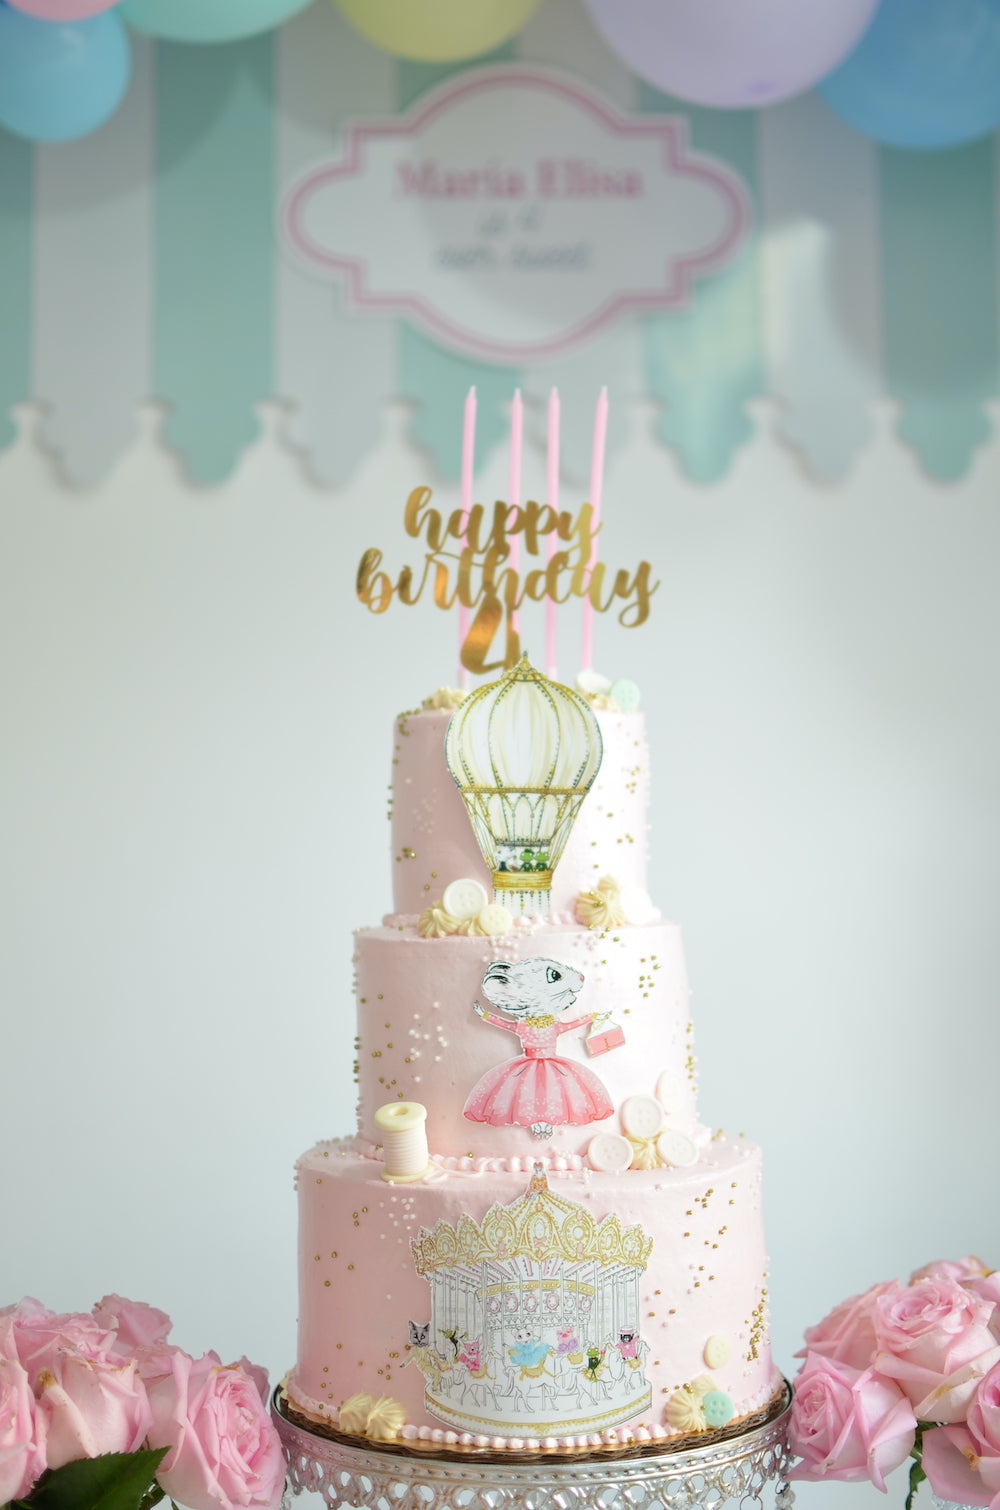 Charlotte sy Dimby dress and Claris the mouse in Paris children's party inspiration three layer cake